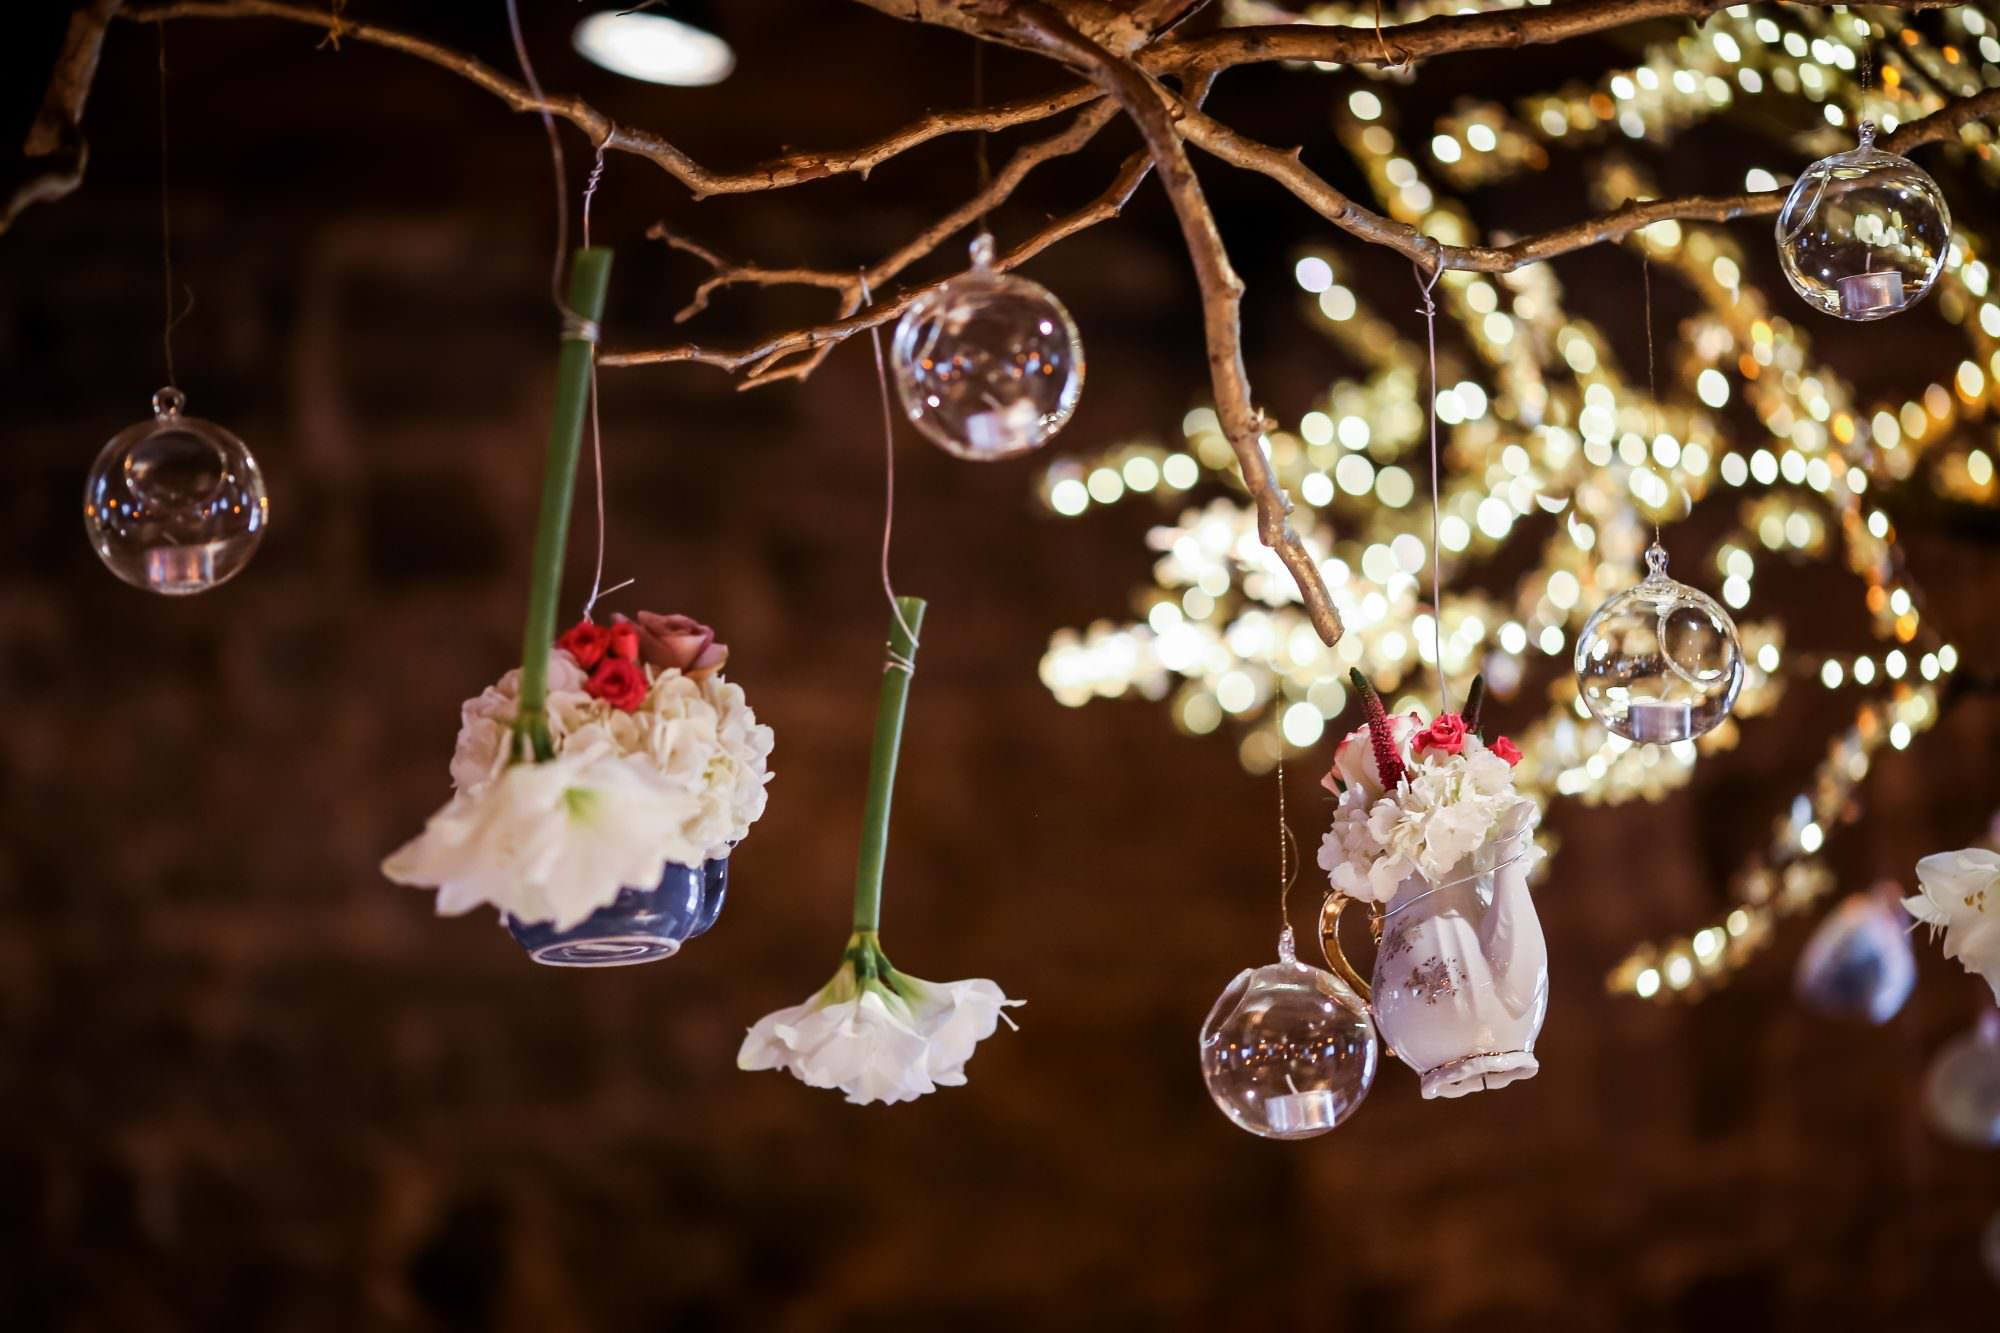 alain simon fleurs throwing petals details wedding montreal photographer planning creations maryse noel vielle brasserie alice wonderland tree hanging tea cups